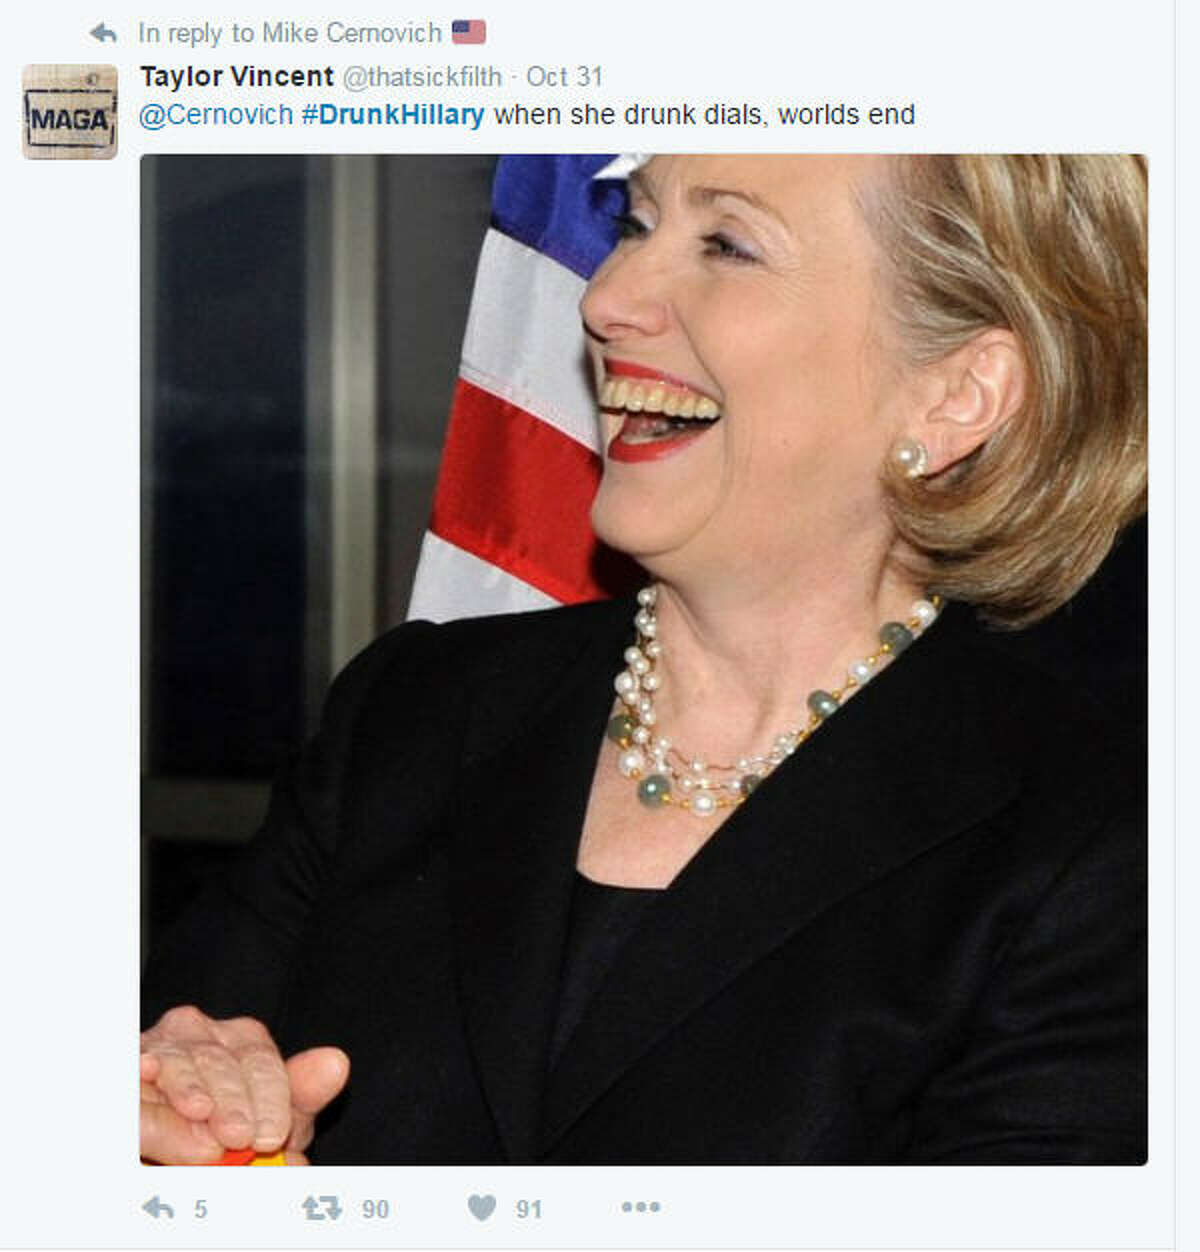 The Twitter hashtag #DrunkHillary, referring to presidential candidate Hillary Clinton, began circulating in late October 2016, particularly among supporters of her opponent, Donald Trump. (Photo: Via @thatsickfilth on Twitter)